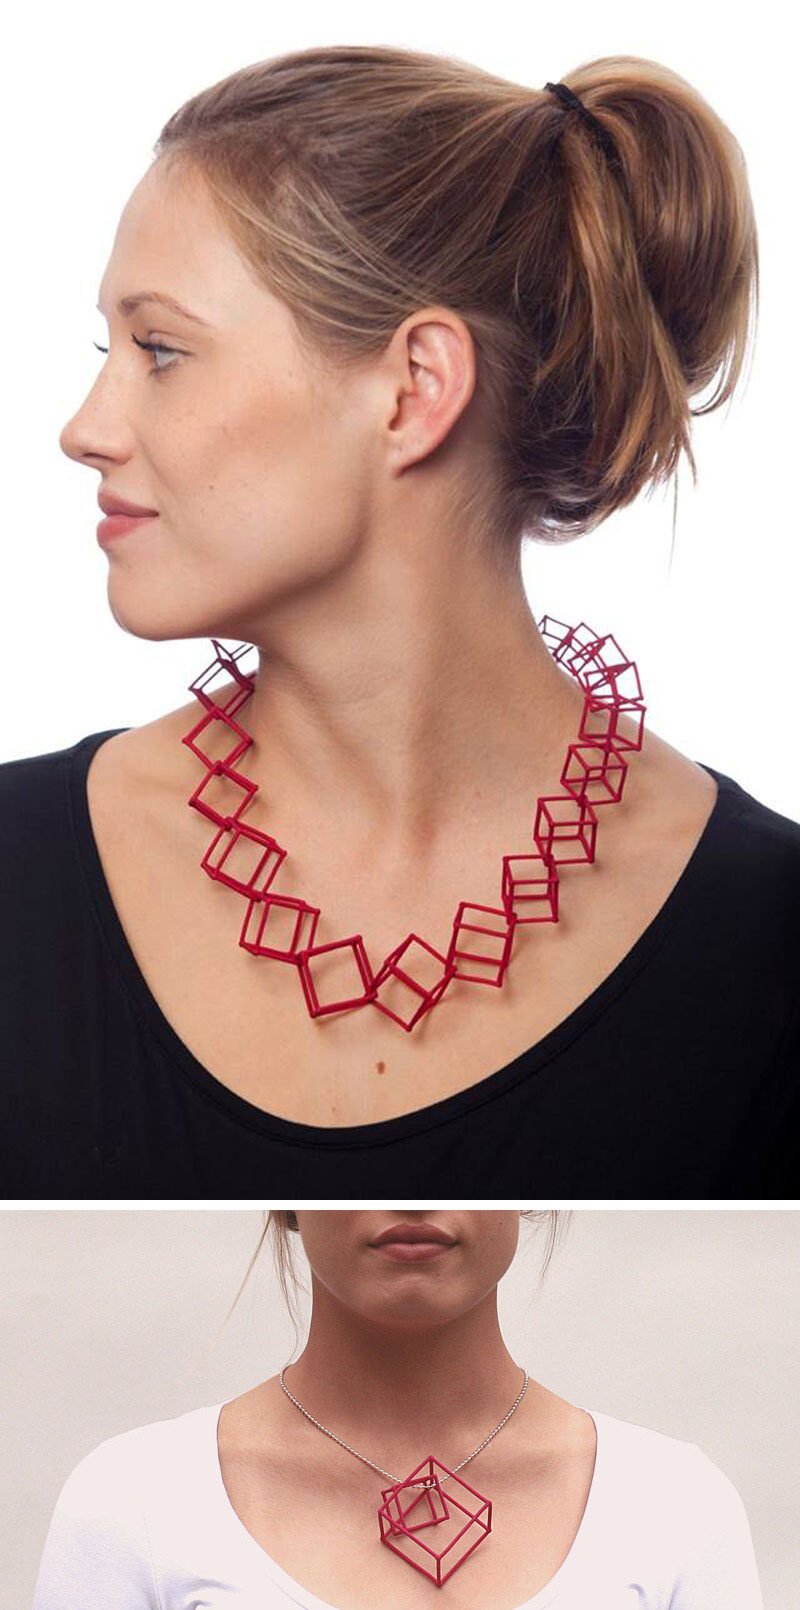 These bright red colorful cube necklaces are made from 3D printed nylon dyed in fun colors to create unique pieces of geometric jewelry. #ModernJewelry #Fashion #Style